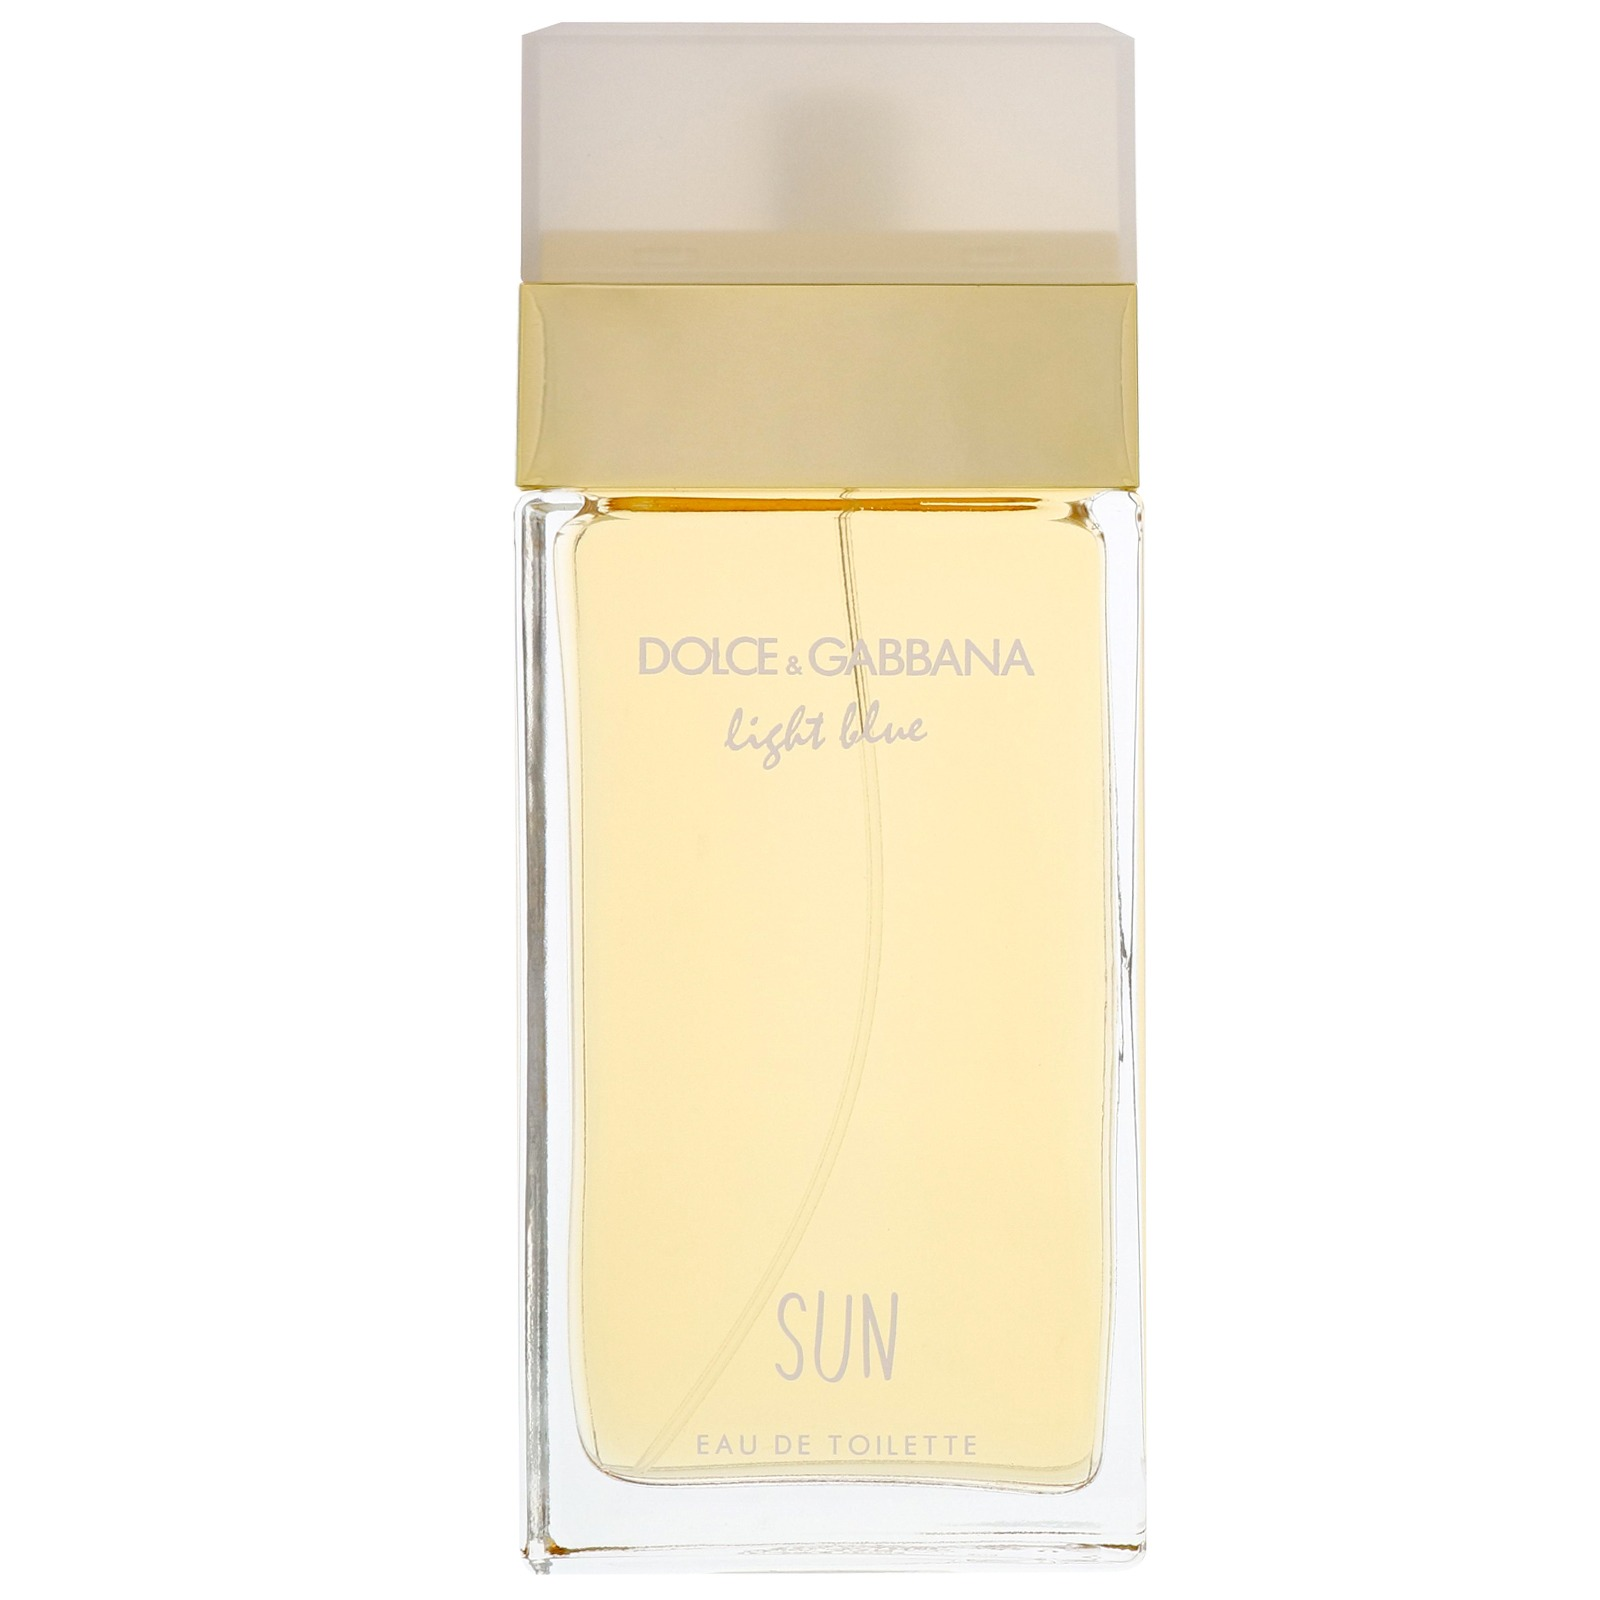 DOLCE & GABBANA Light Blue Sun Eau de Toilette Spray 100ml